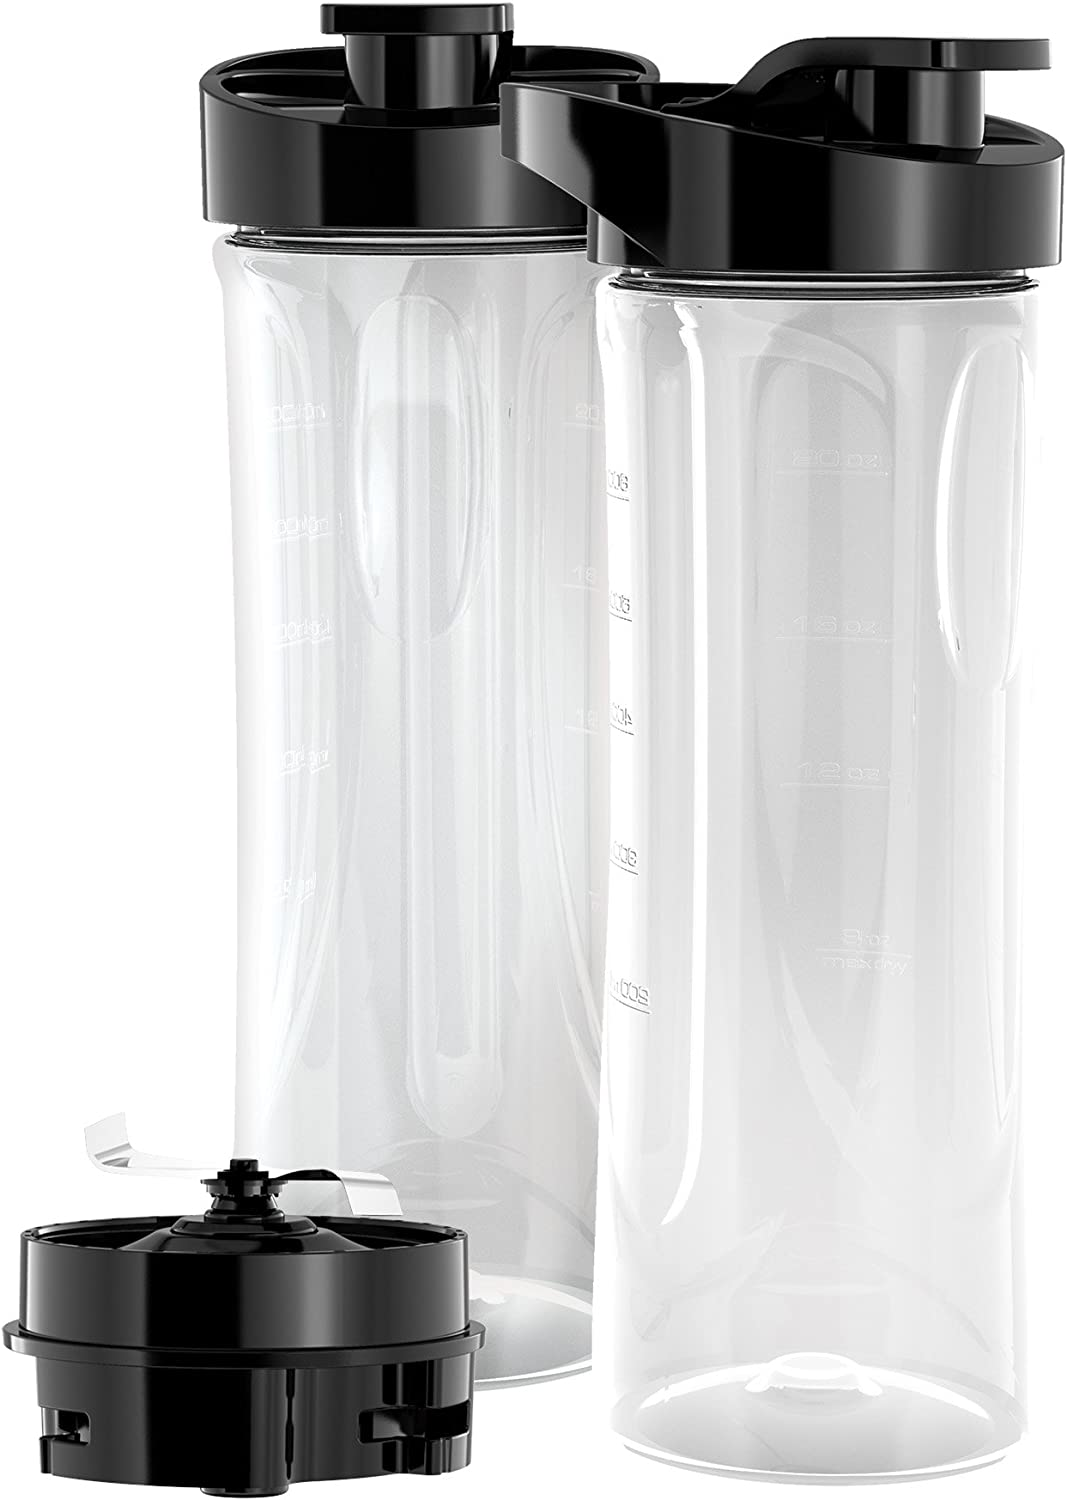 BLACK+DECKER PBJ2000 FusionBlade 20 Ounce BPA-Free Personal Blender Jars (2-Pack with Travel Lids)